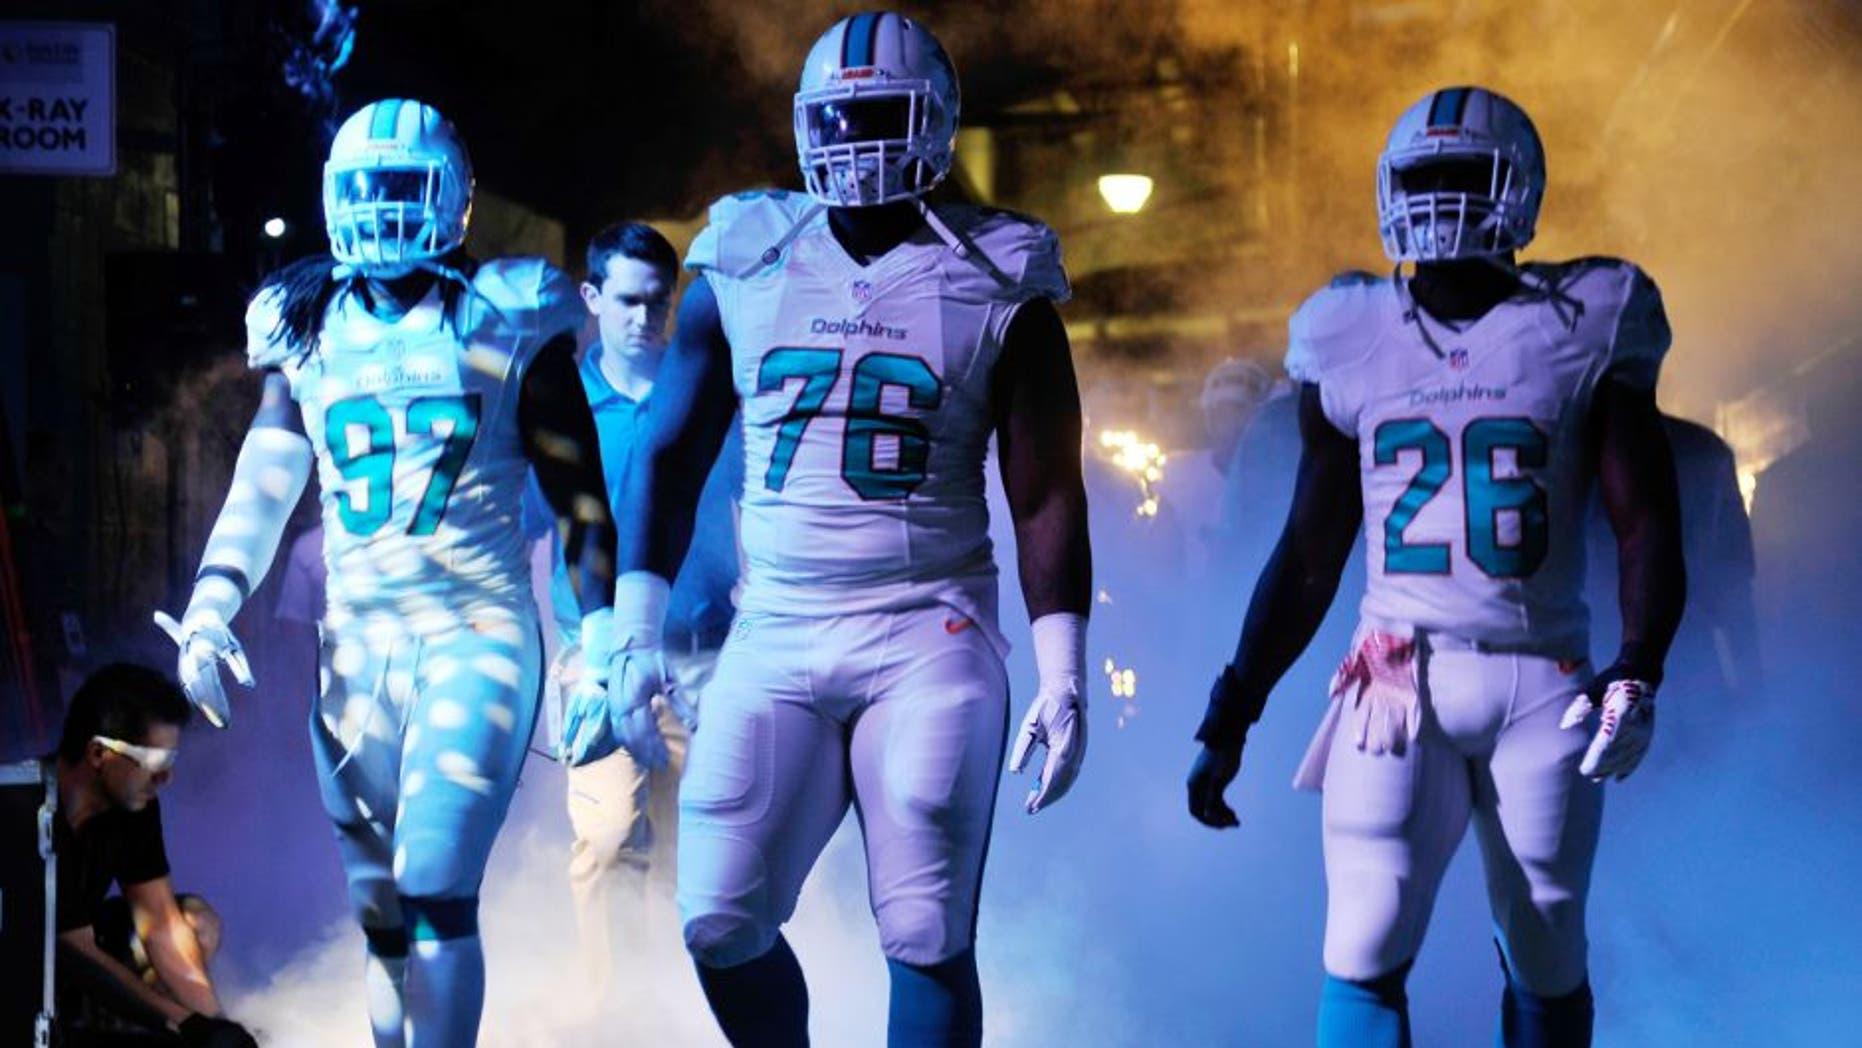 Dec 7, 2014; Miami Gardens, FL, USA; Miami Dolphins linebacker Kelvin Sheppard (left), defensive end Terrence Fede (center) and running back Knowshon Moreno (right) prepare to take the field before a game against the Baltimore Ravens at Sun Life Stadium. Mandatory Credit: Steve Mitchell-USA TODAY Sports